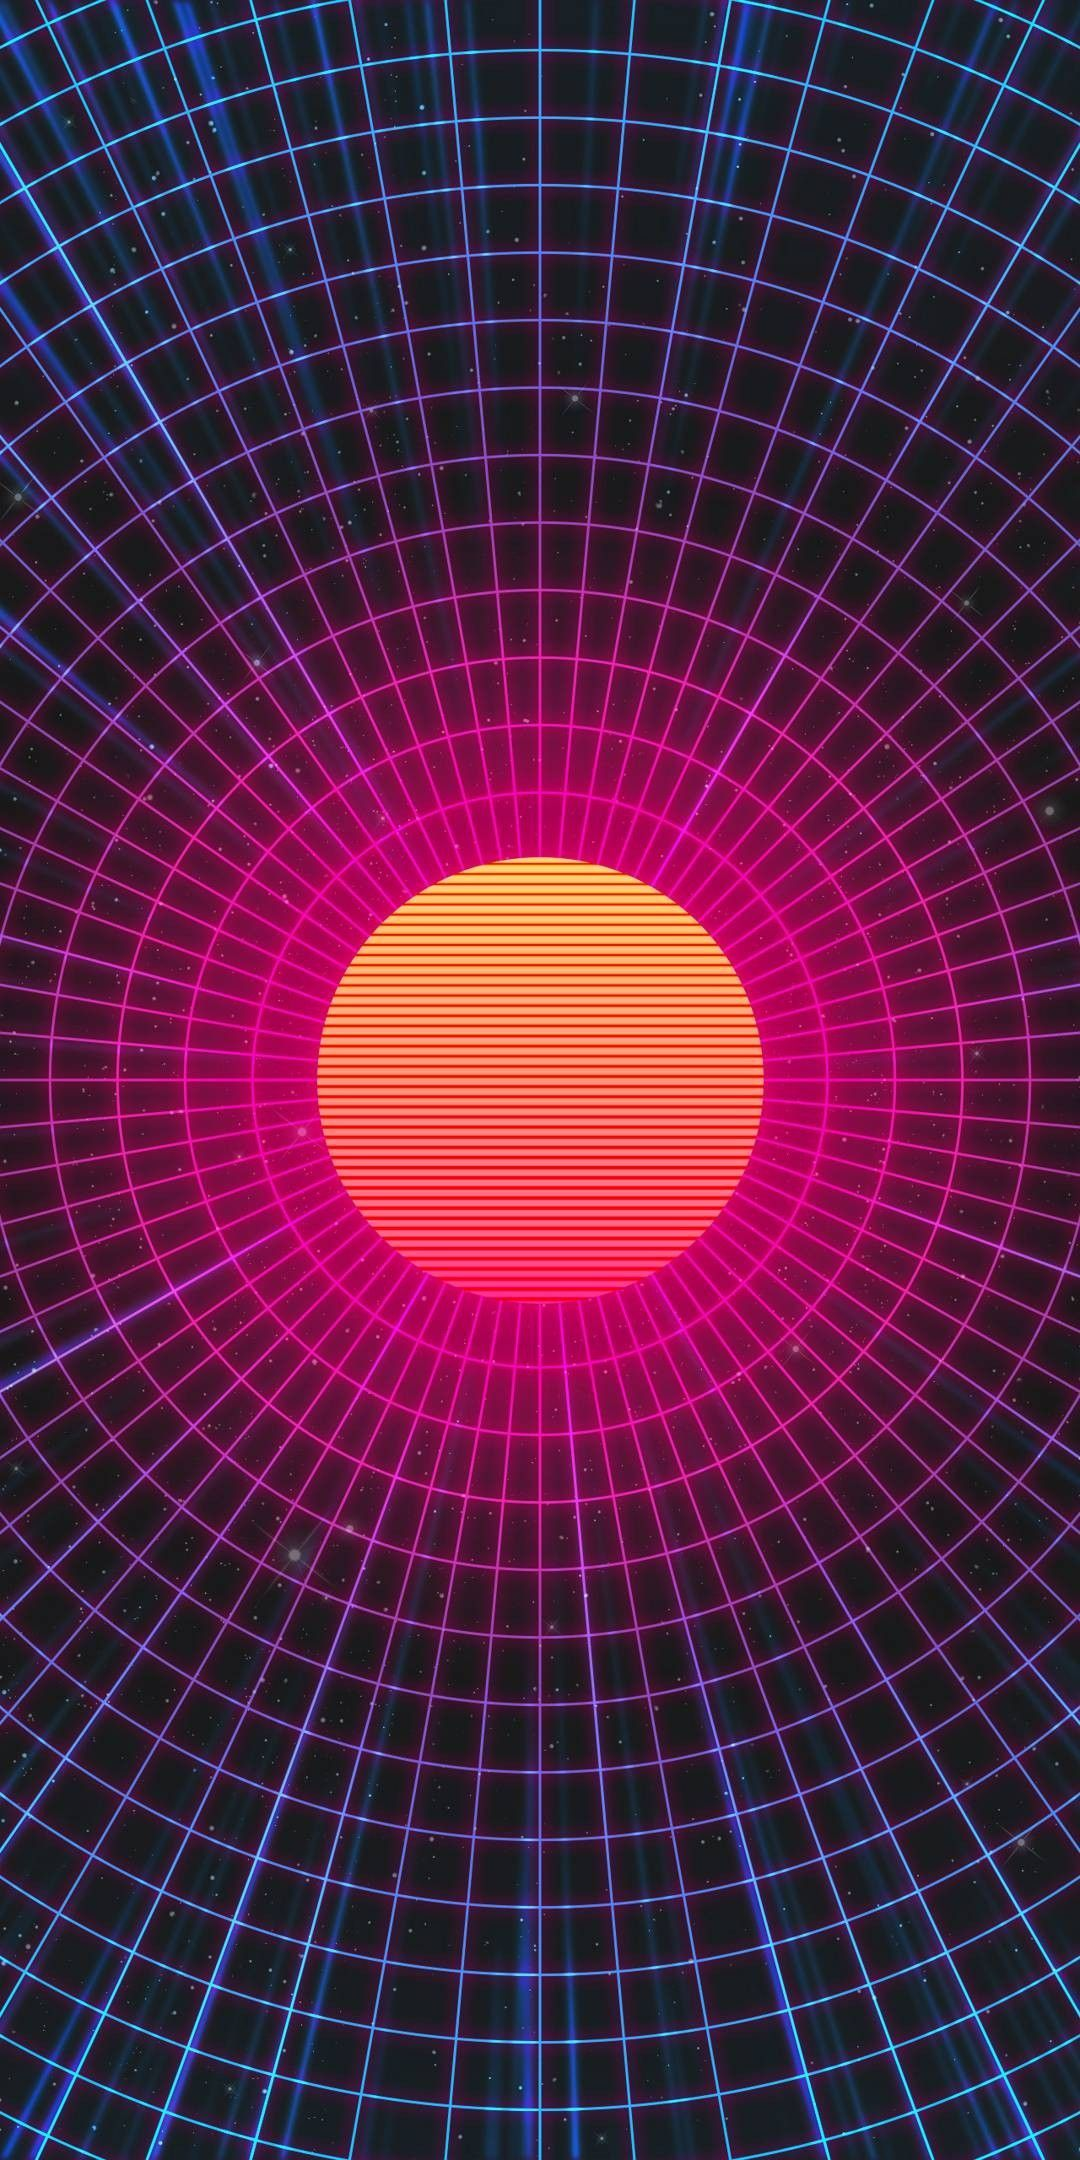 We've created a Radical 80s wallpaper app to remind eighties people and teenagers of this time with several 80s retro wallpapers like retro wave wallpaper, ...